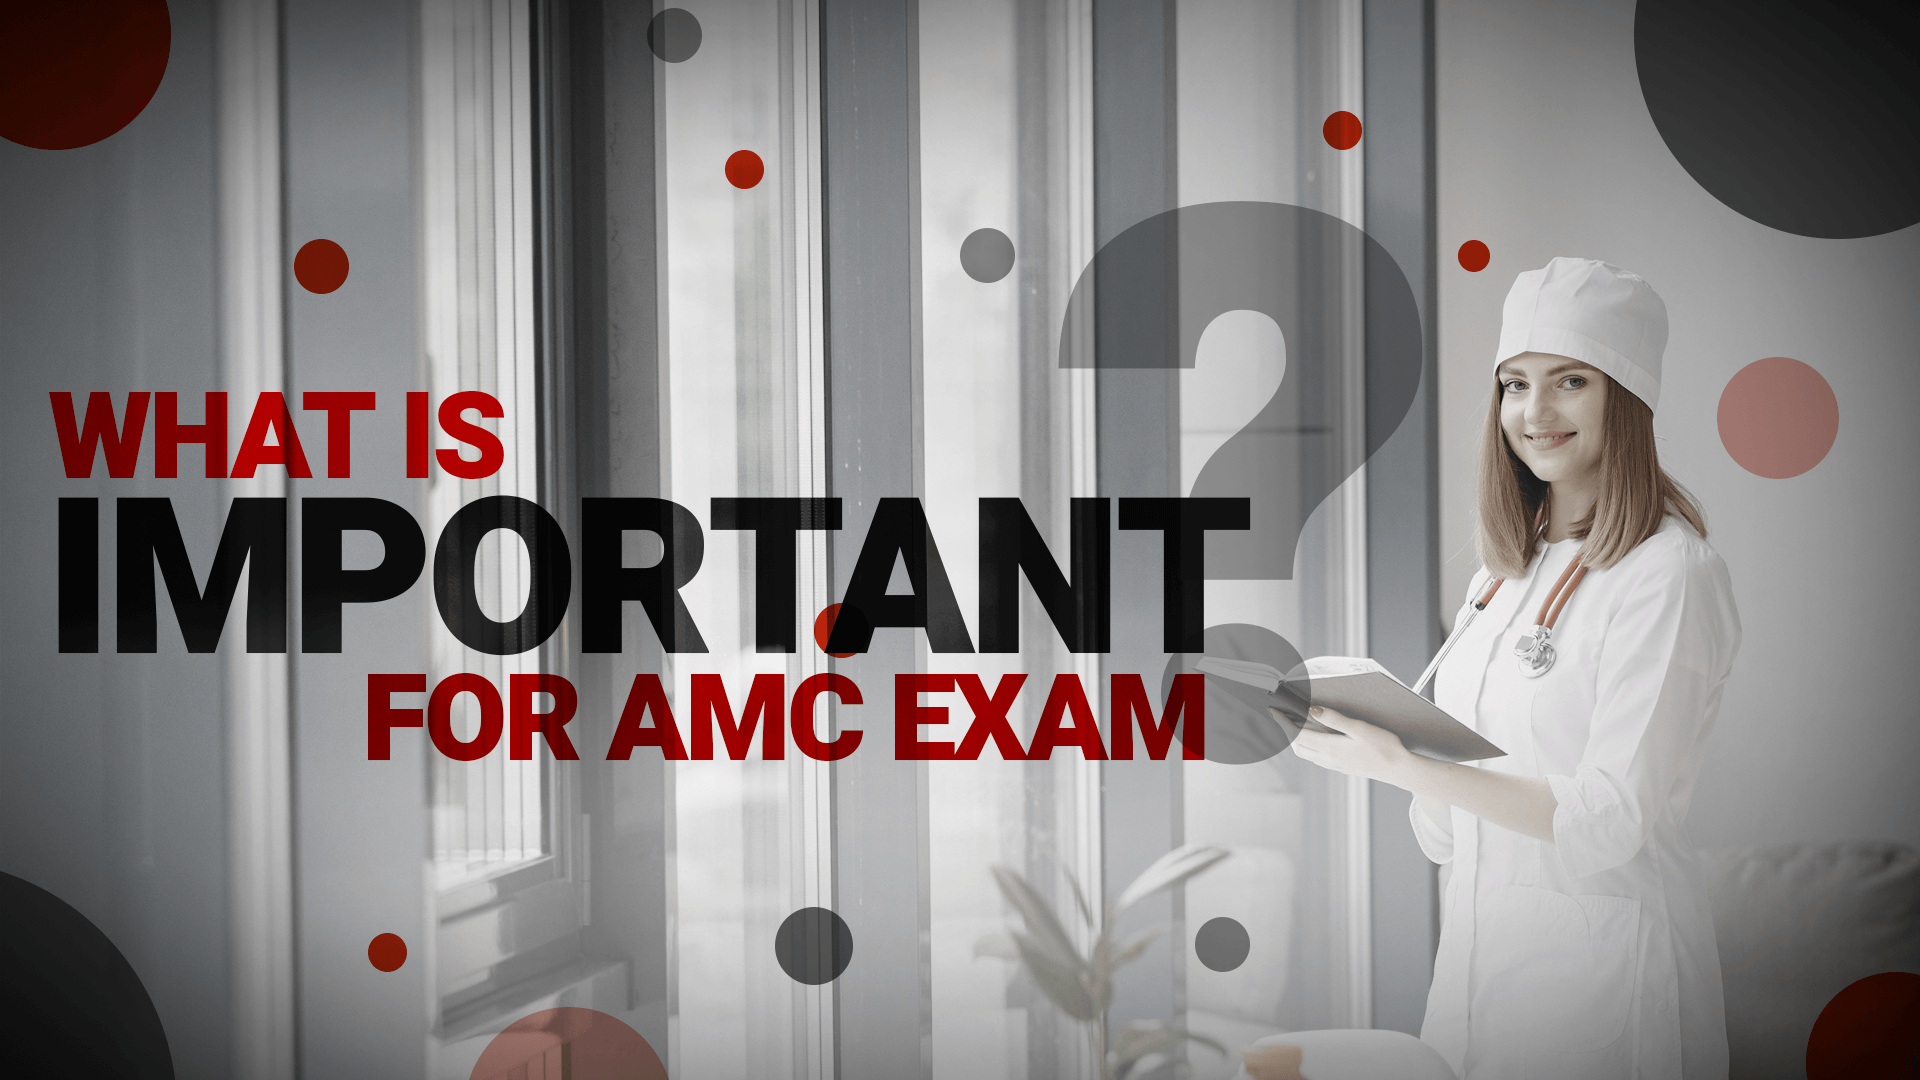 What is important for AMC Exam?